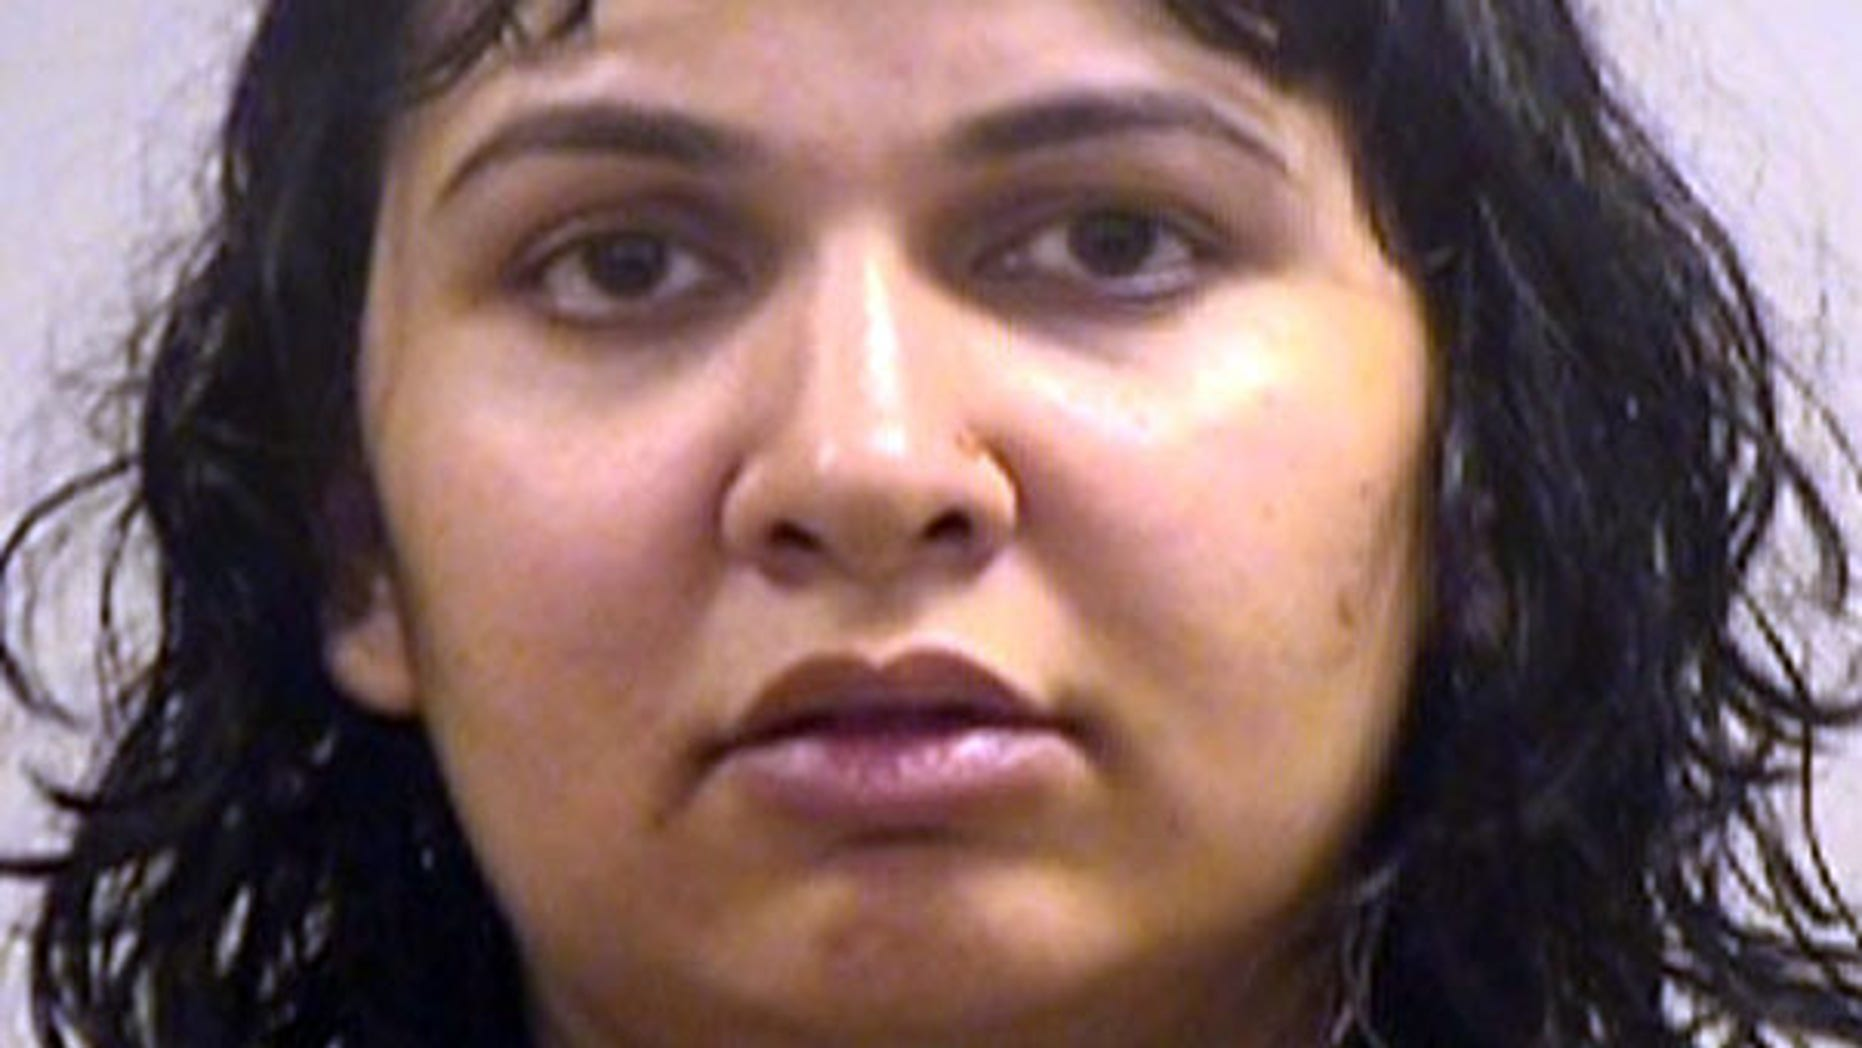 Saiqa Akhter, 30, called Texas police after she strangled her two children, killing her 5-year-old son, police officials said.